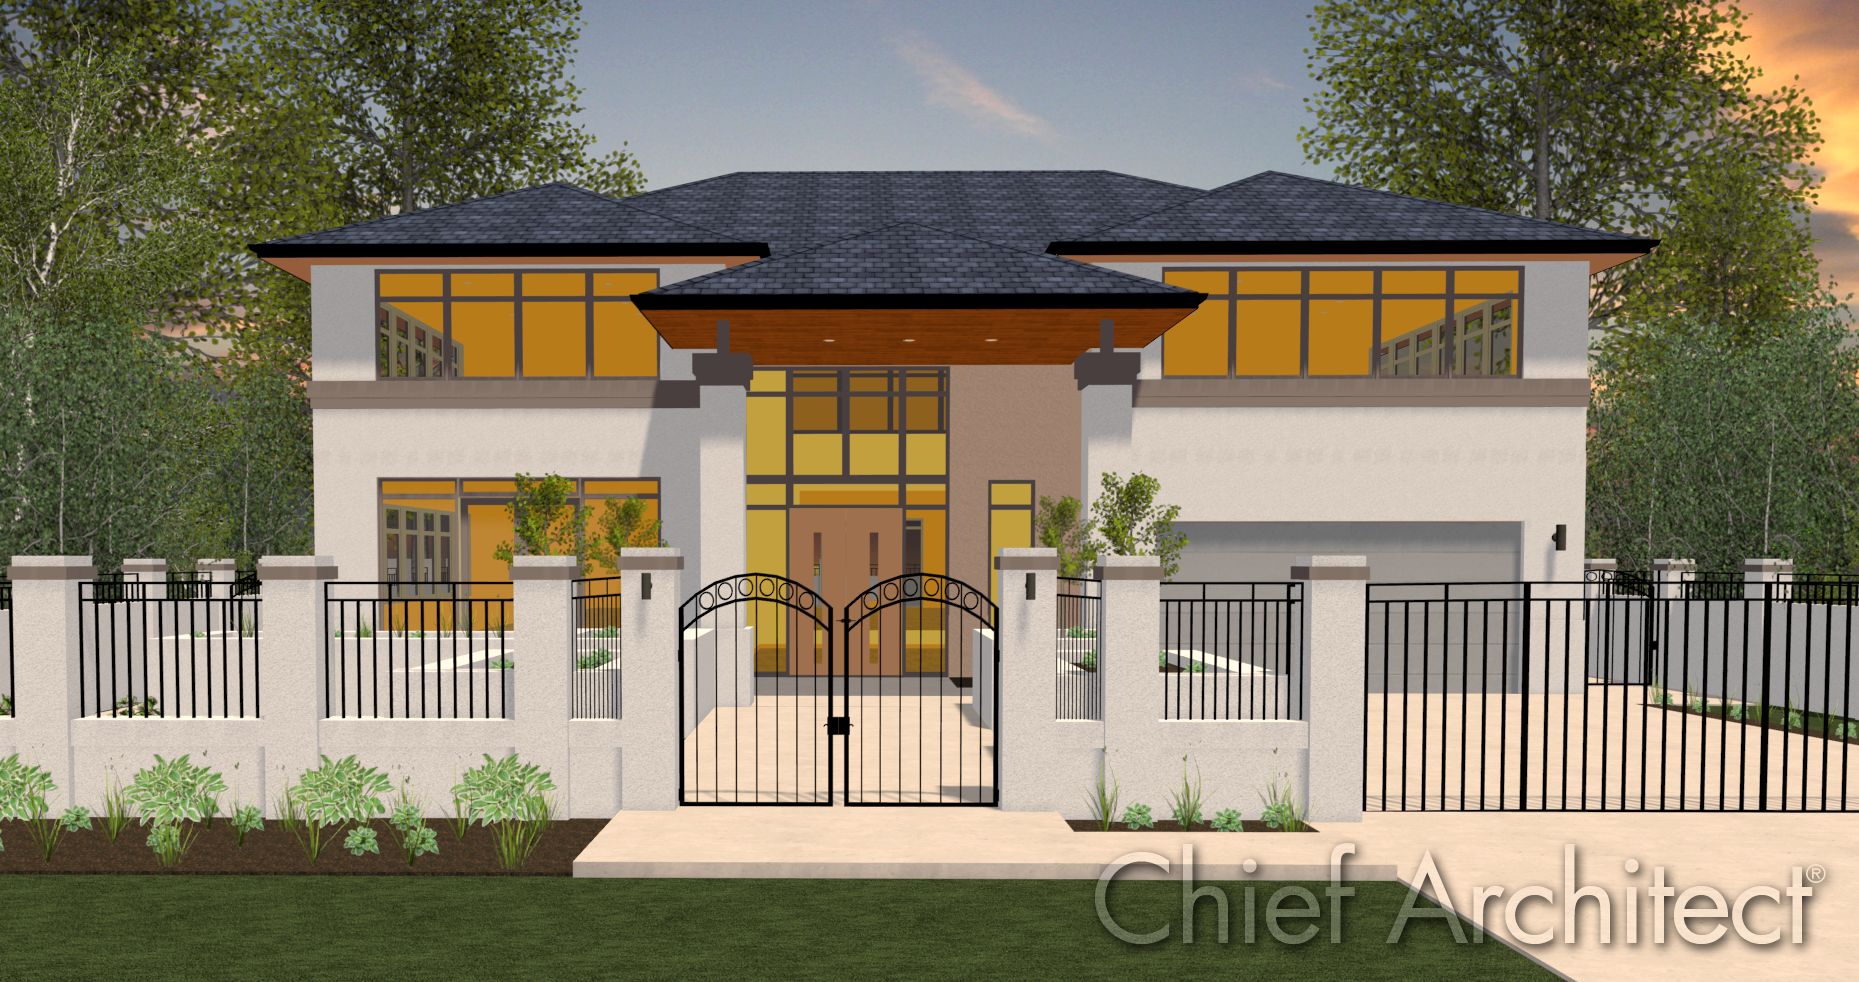 Chief architect home designer essentials 2017 software computer software multimedia software for Chief architect home designer essentials 2017